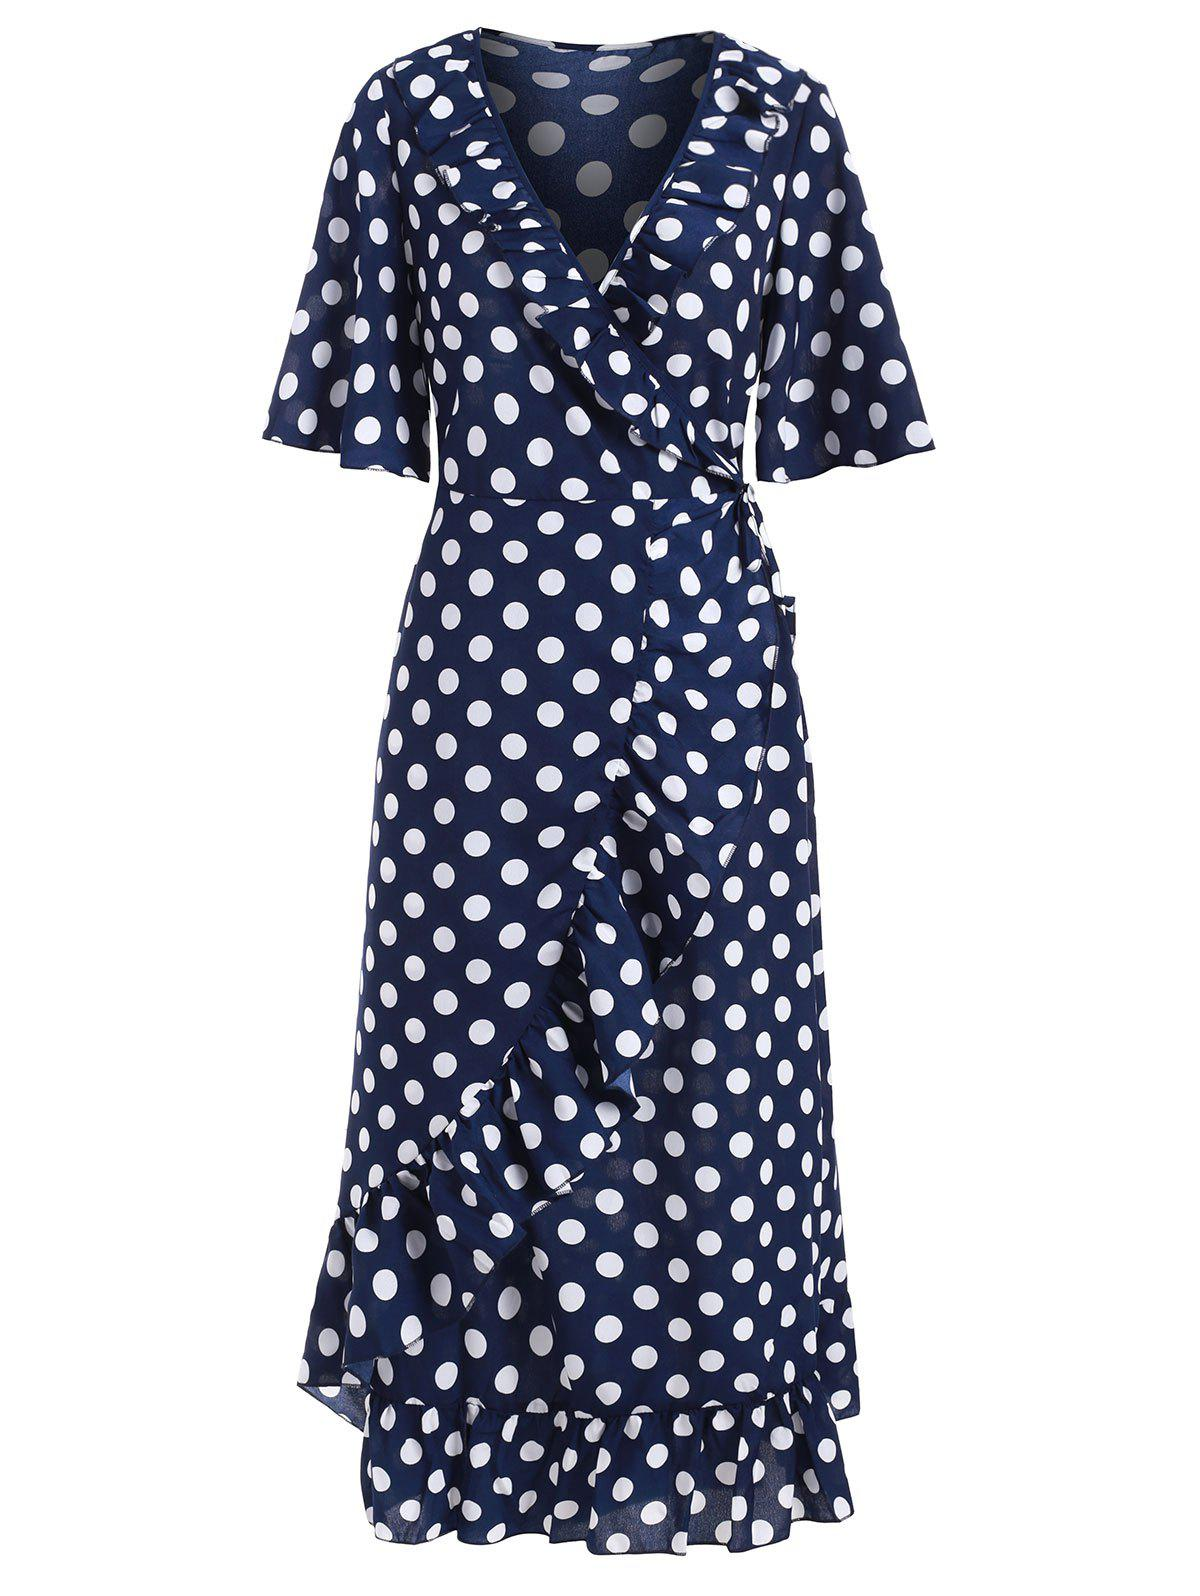 Ruffle Polka Dot Midi Wrap Dress - DEEP BLUE M